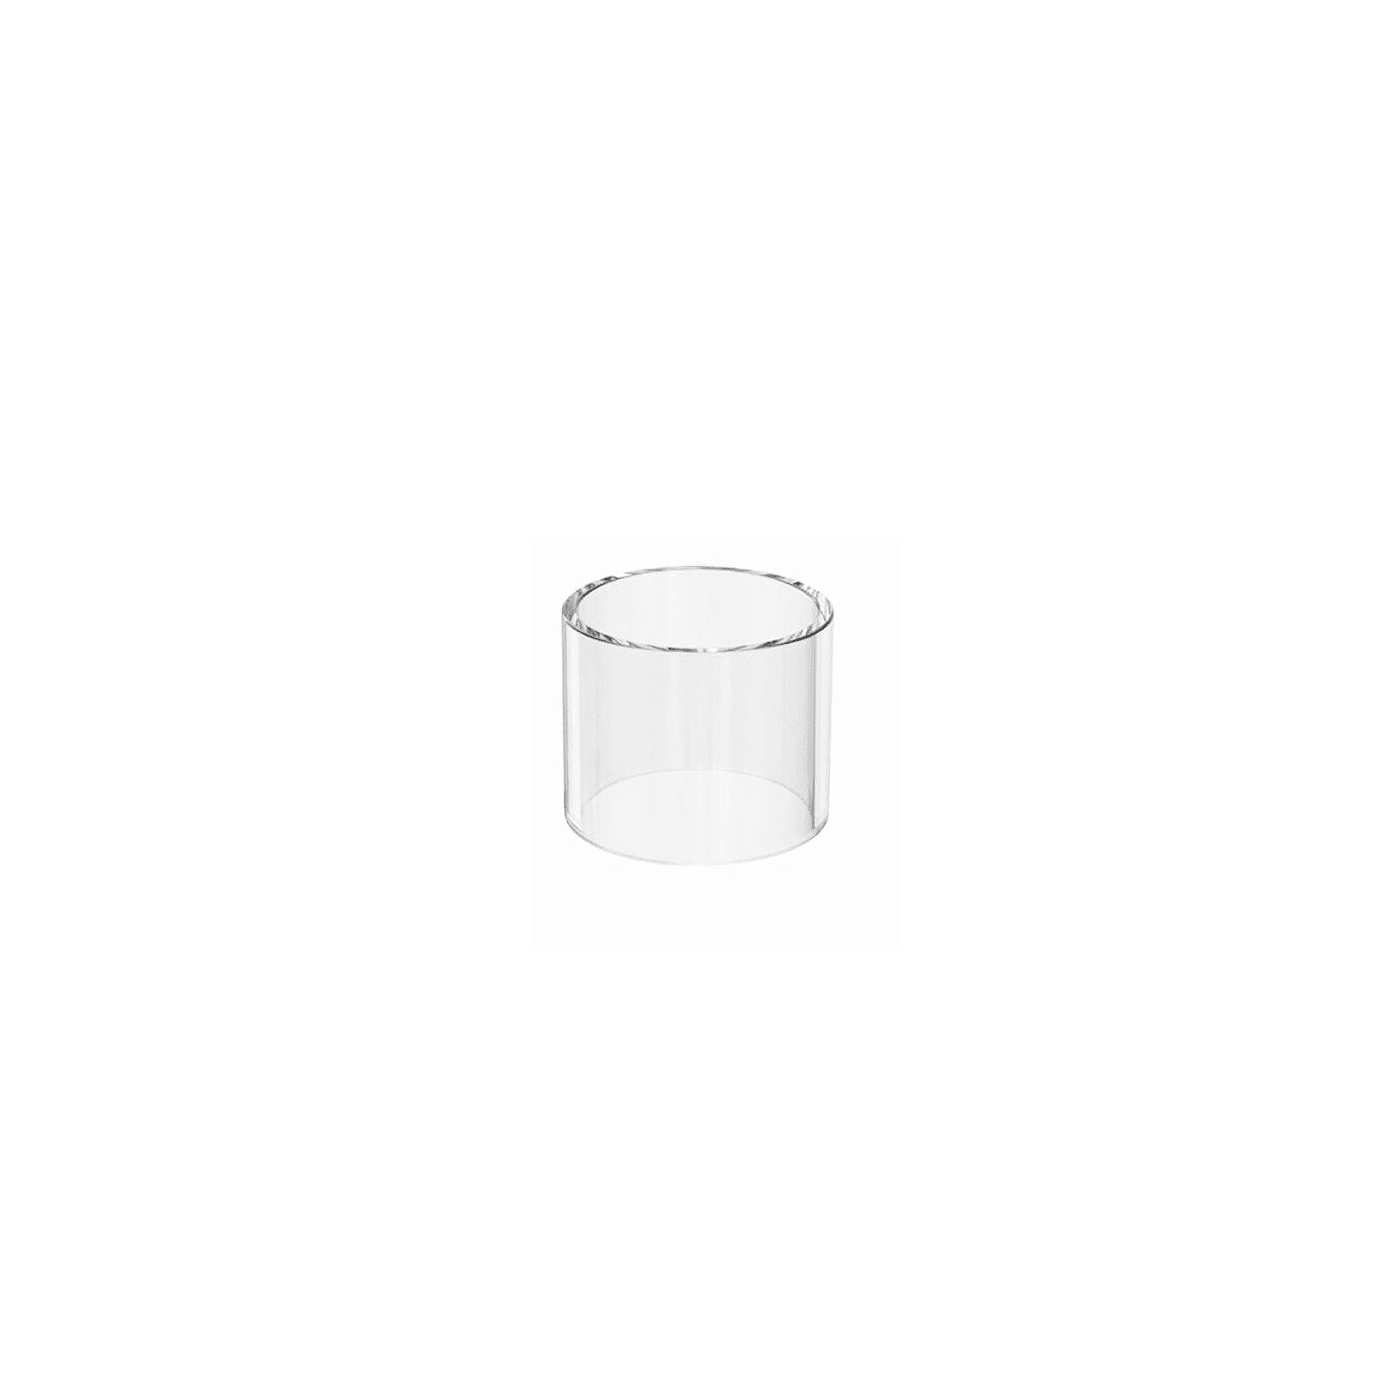 Vaporesso FORZ Tank Replacement Glass